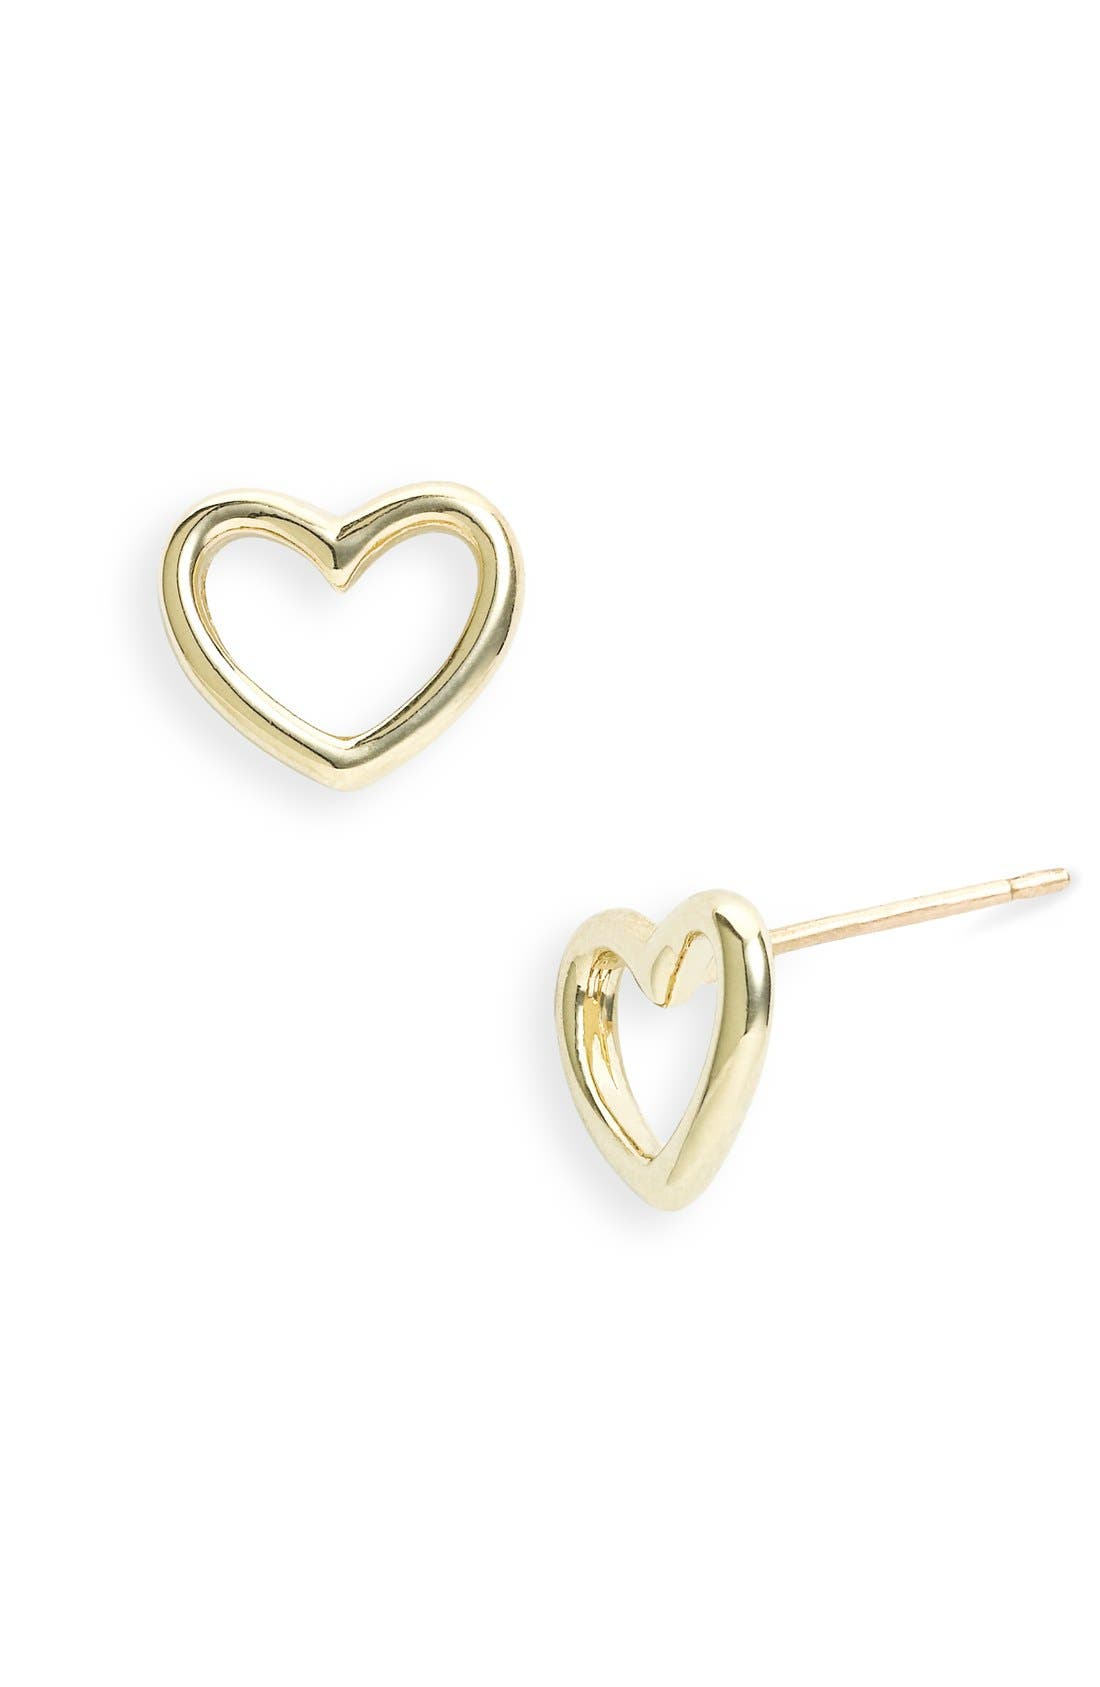 Main Image - MARC BY MARC JACOBS 'Love Edge' Heart Stud Earrings